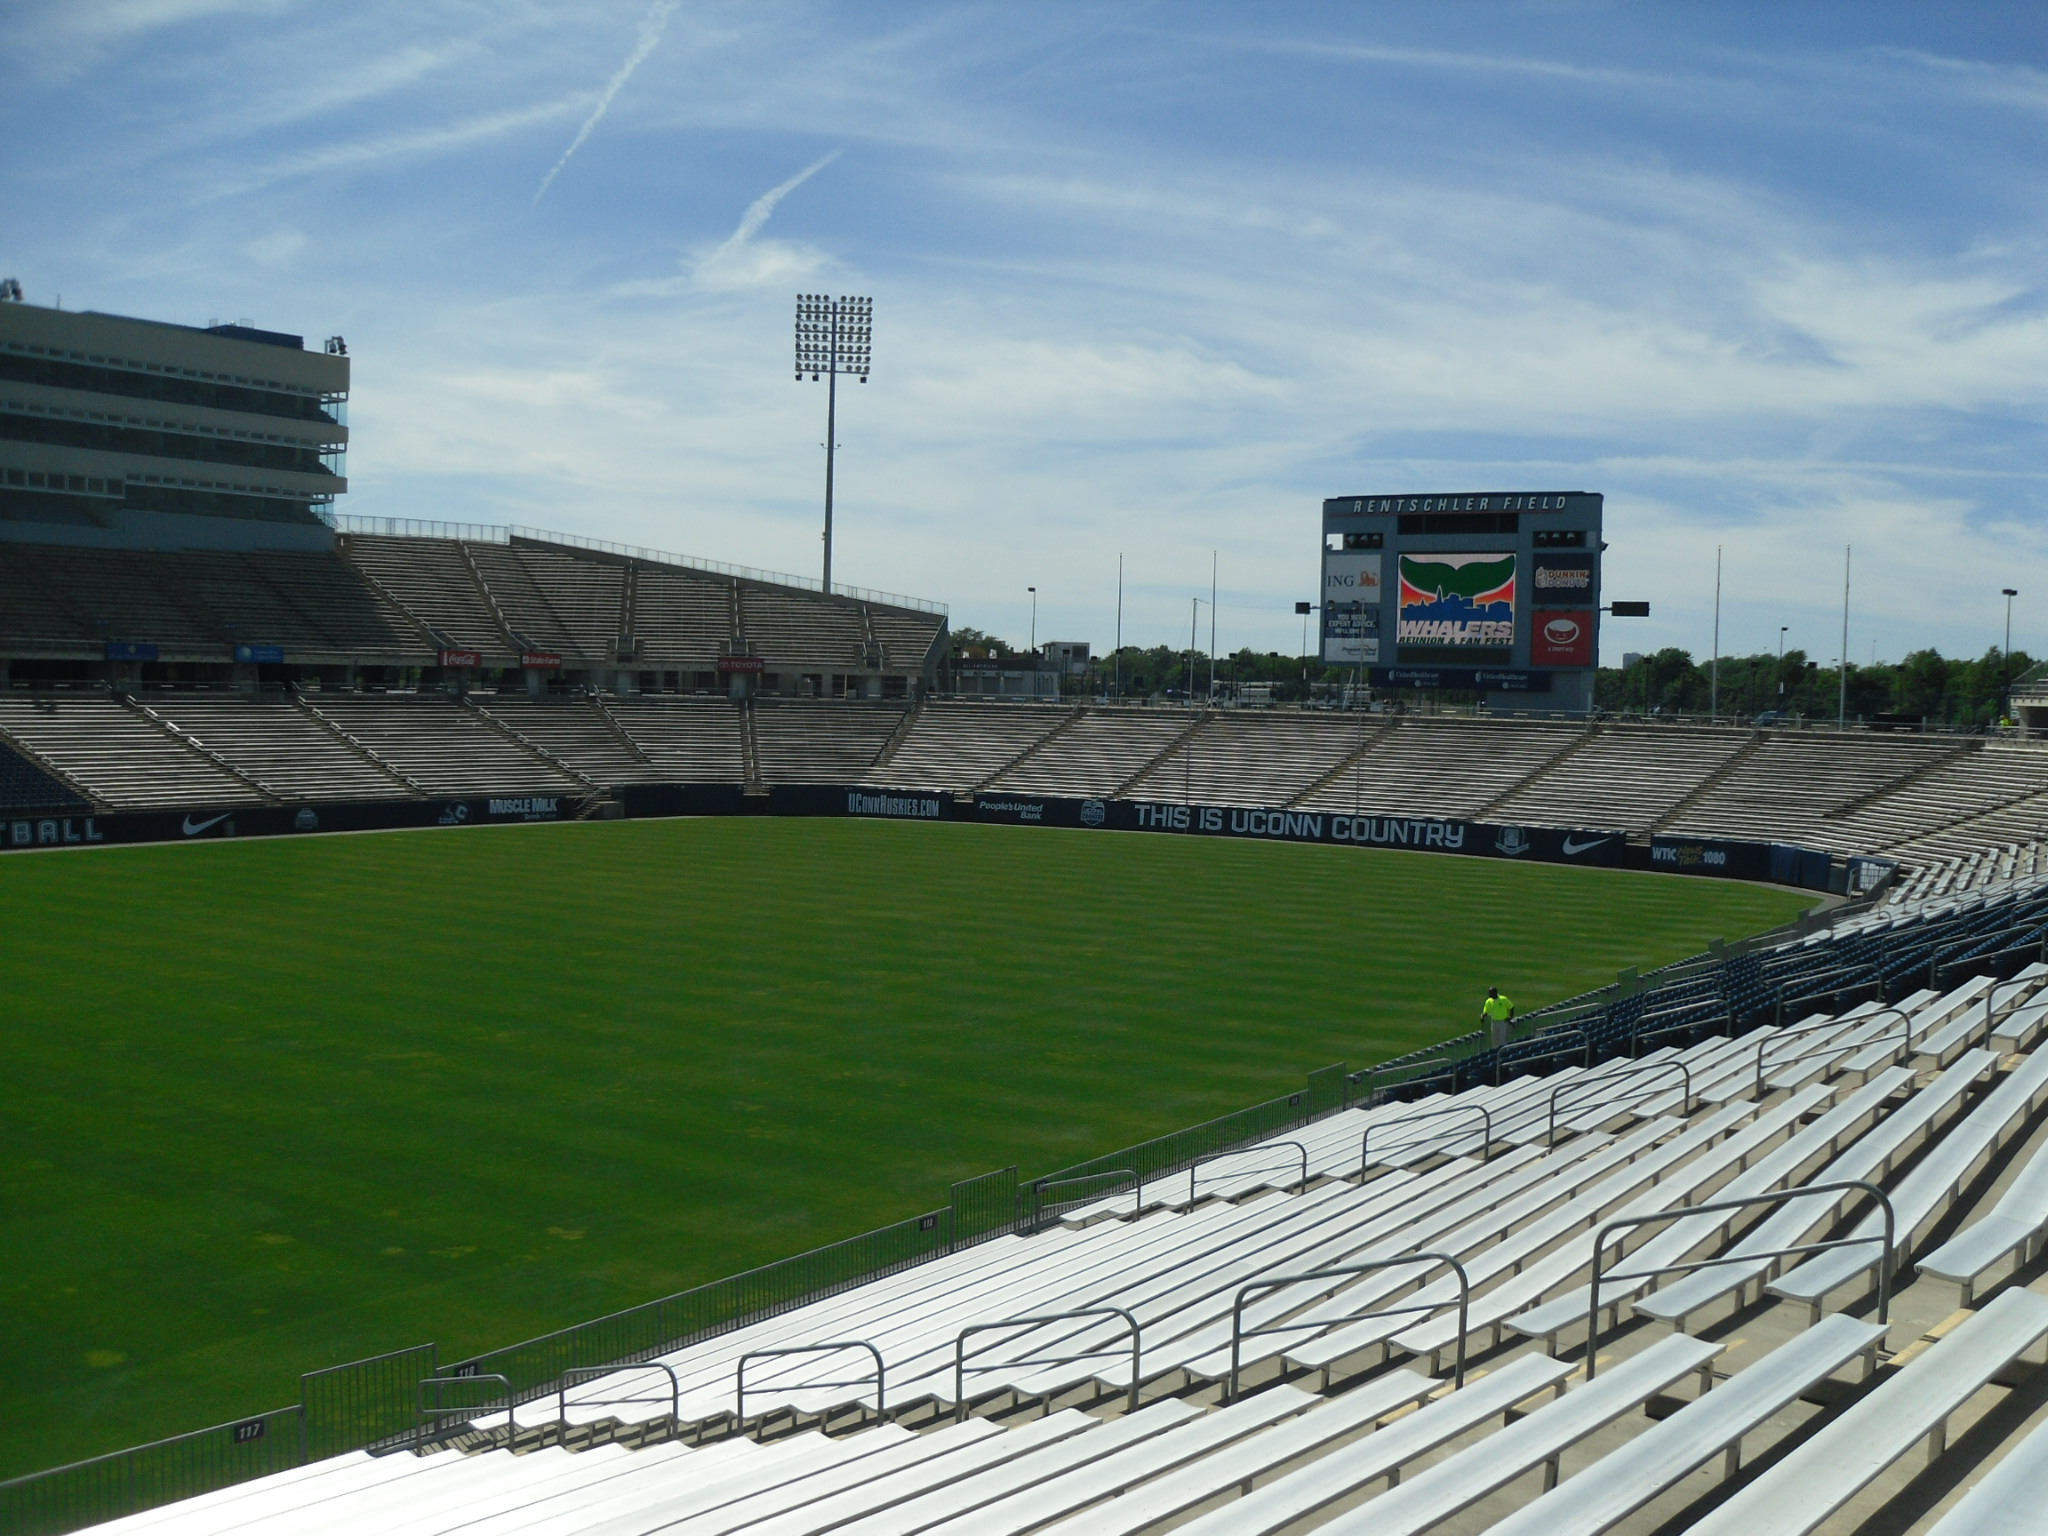 Pratt and Whit Stadium